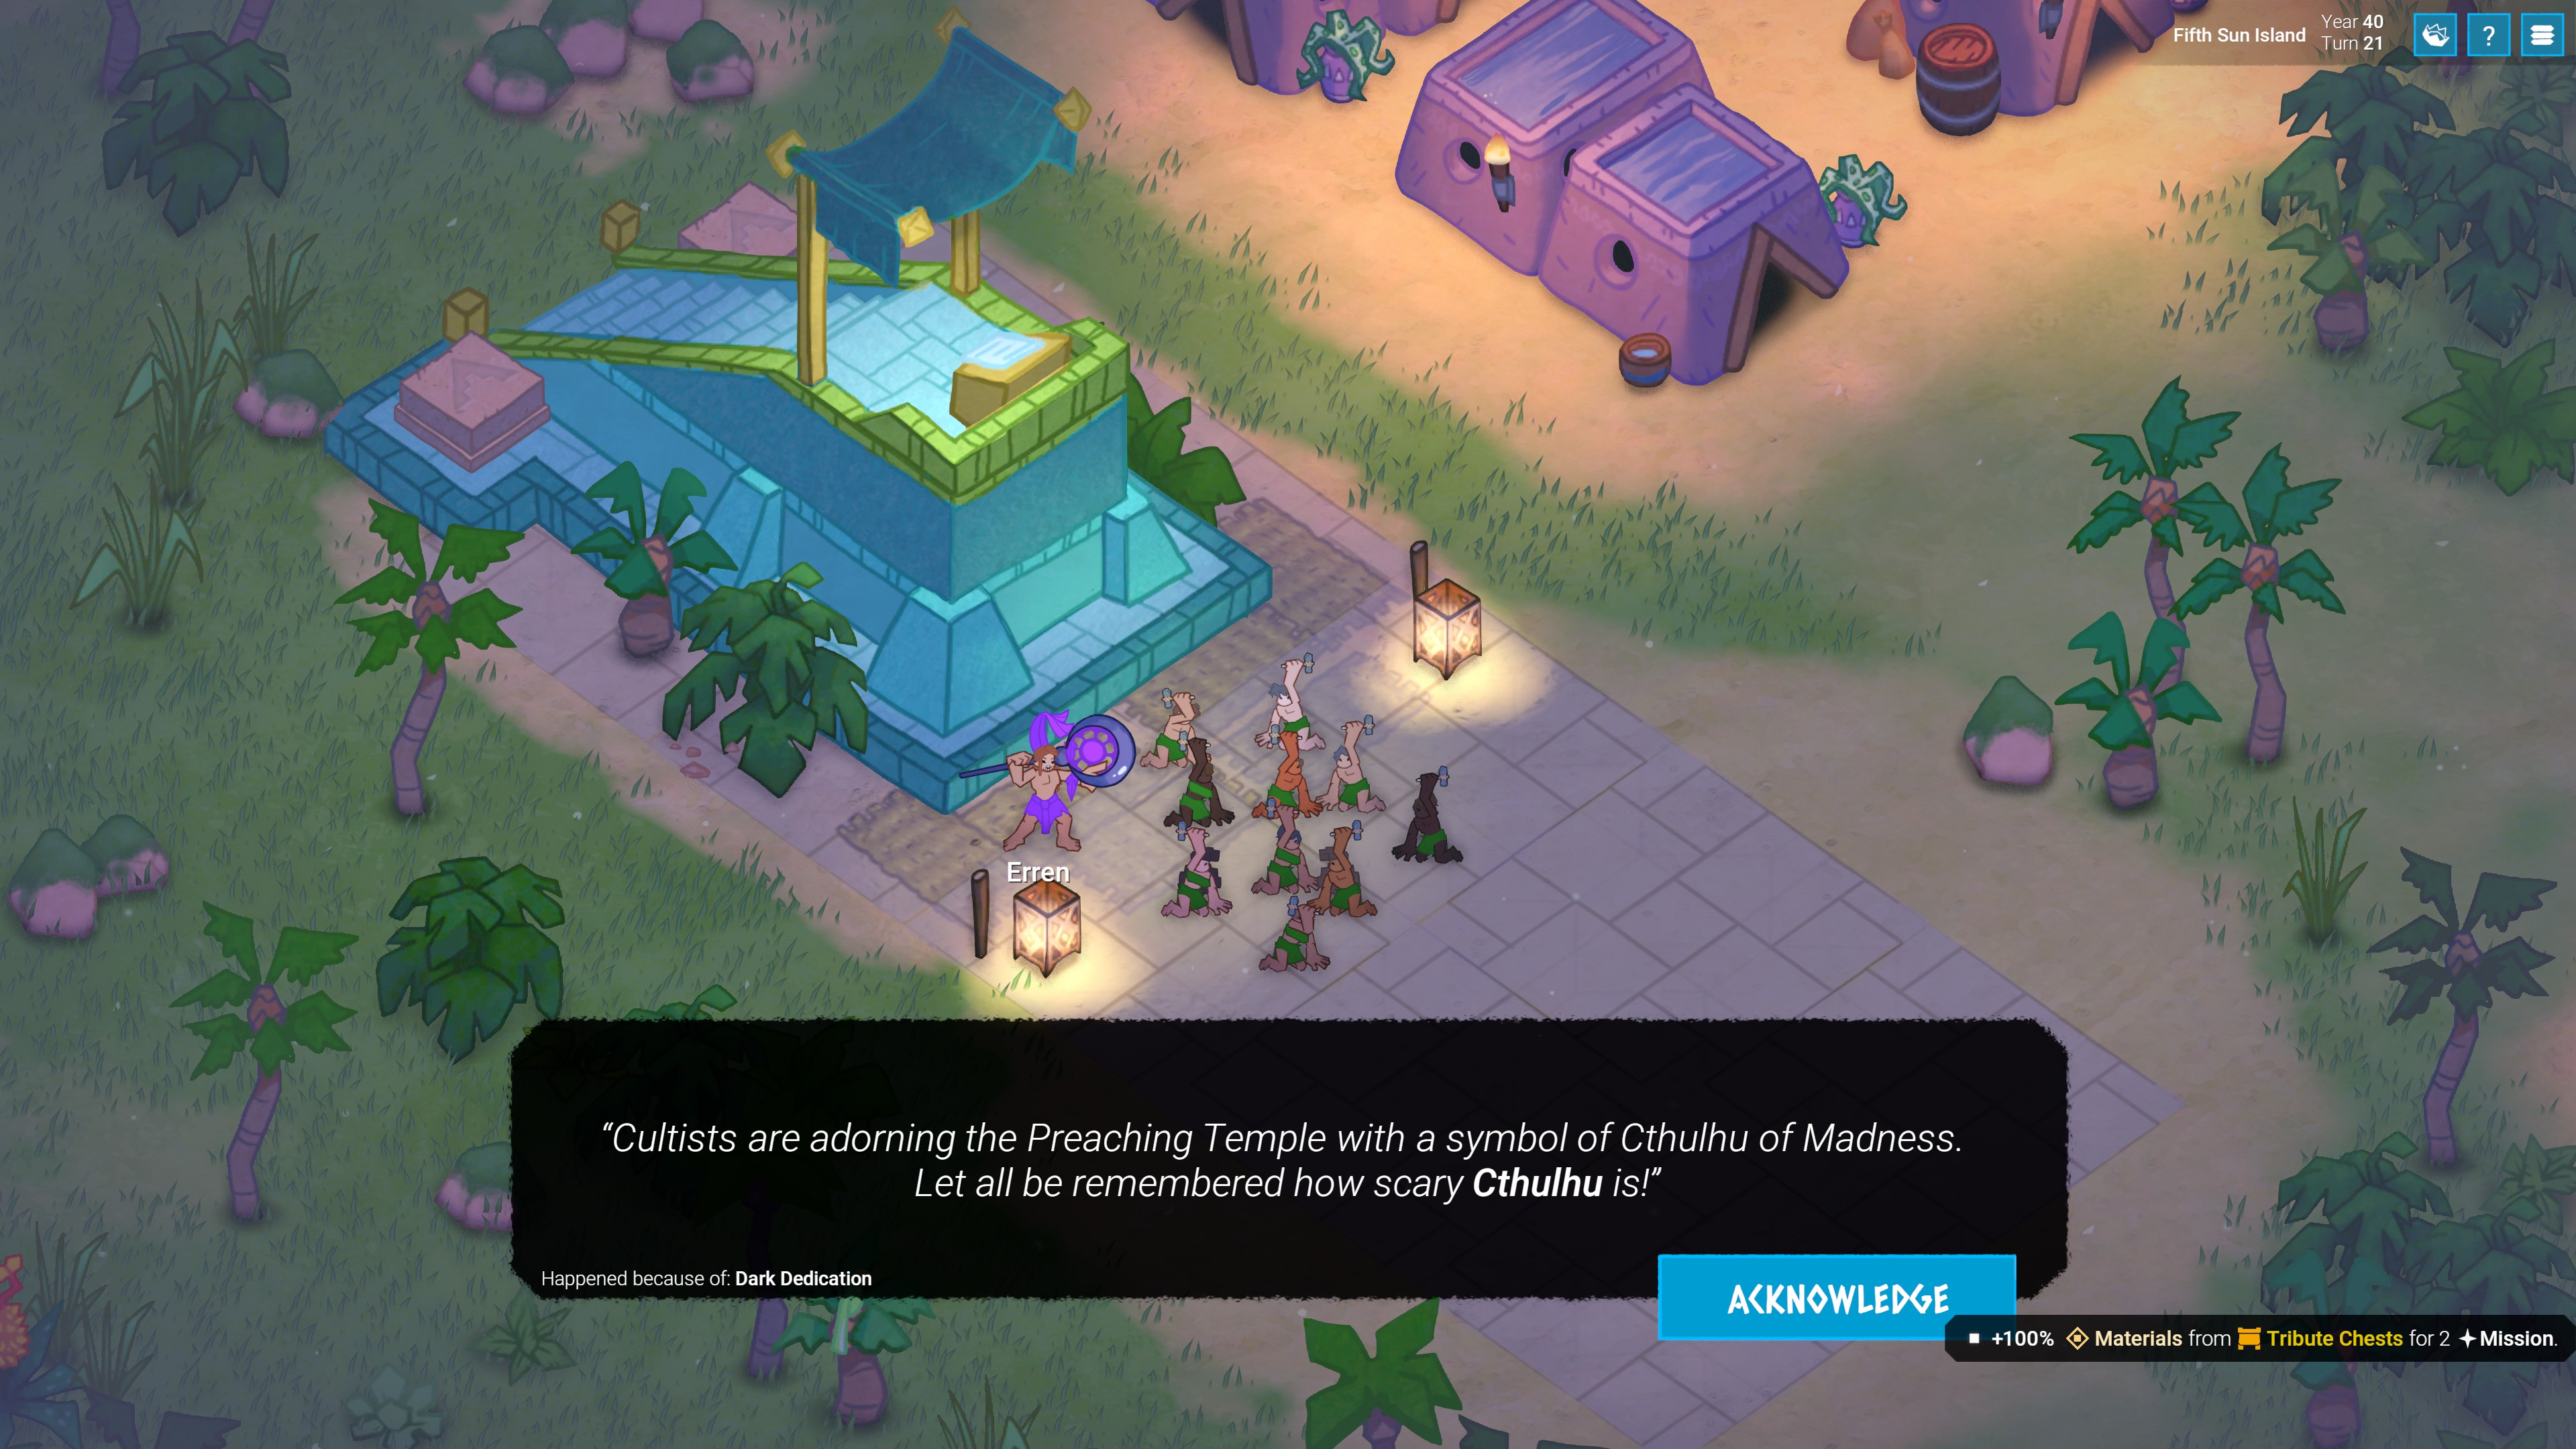 Godhood. Random event triggered by the Dark Devotion religion tenet. Cultists are adorning the preaching temple with a symbol of Cthulhu of Madness. Gain additional 100% materials from tribute chests for 2 missions.